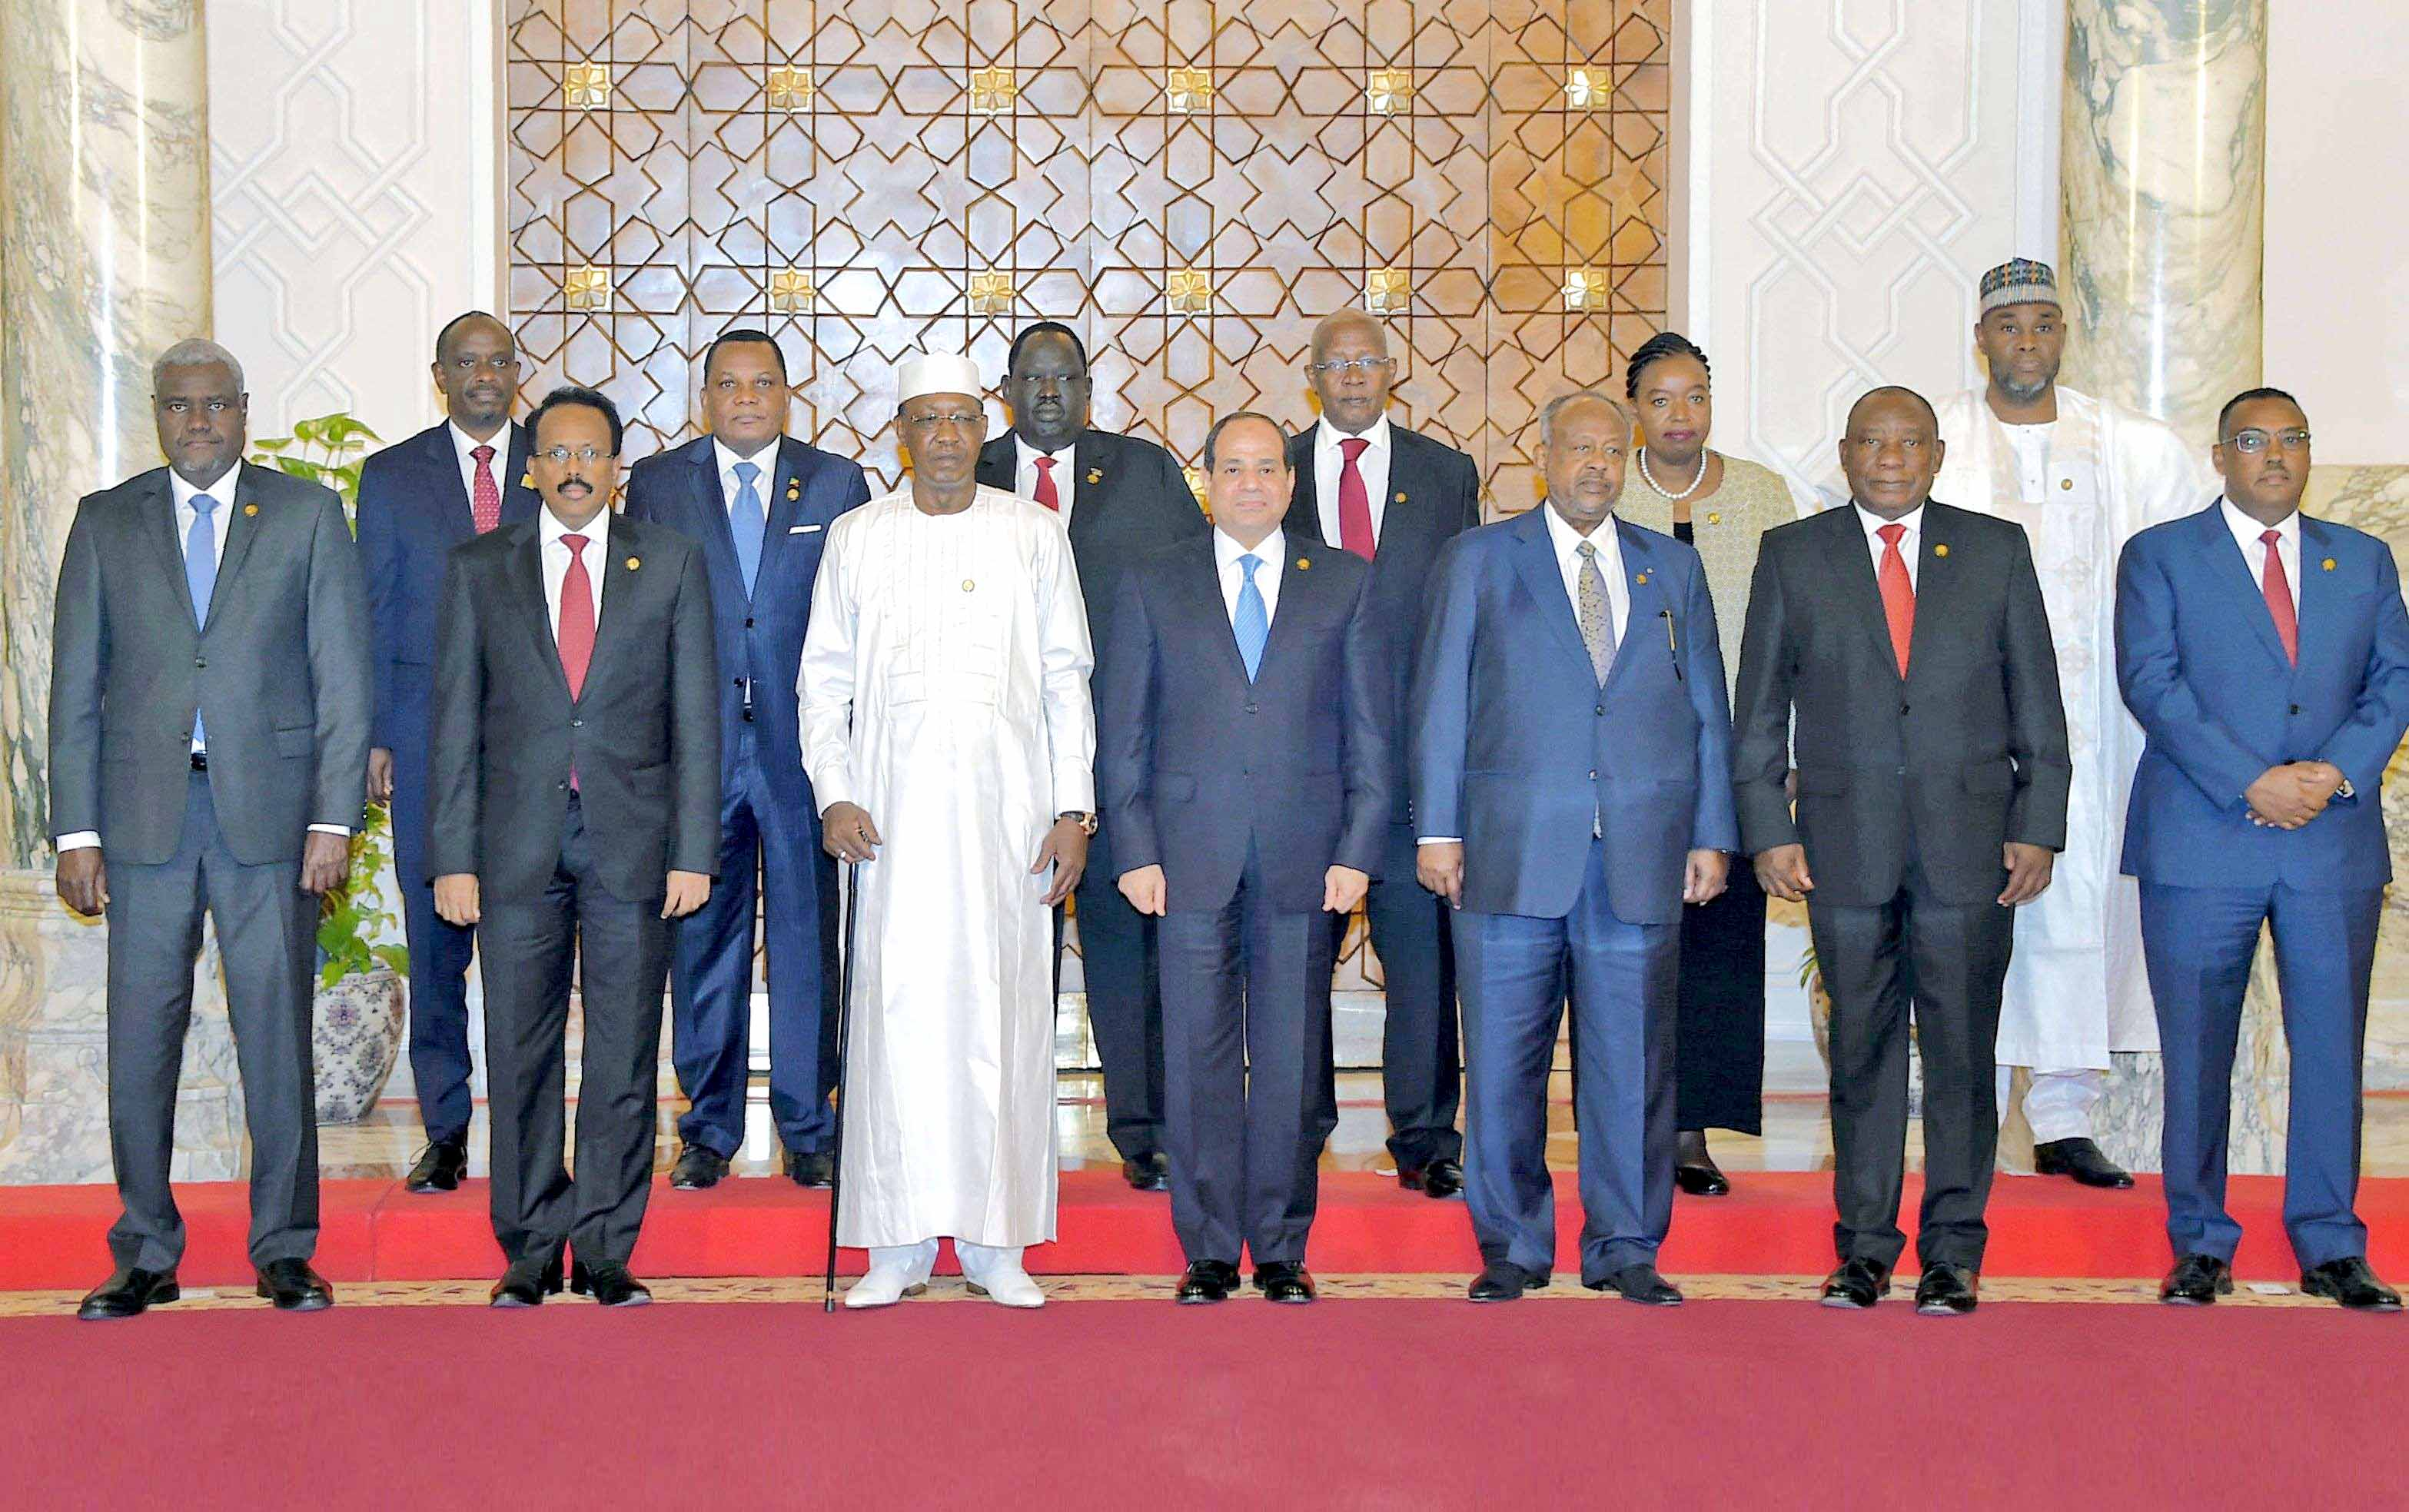 Egyptian President Abdel Fattah al-Sisi (C) hosting African leaders for summit talks on the upheavals in Sudan and Libya, April 23. (AFP)